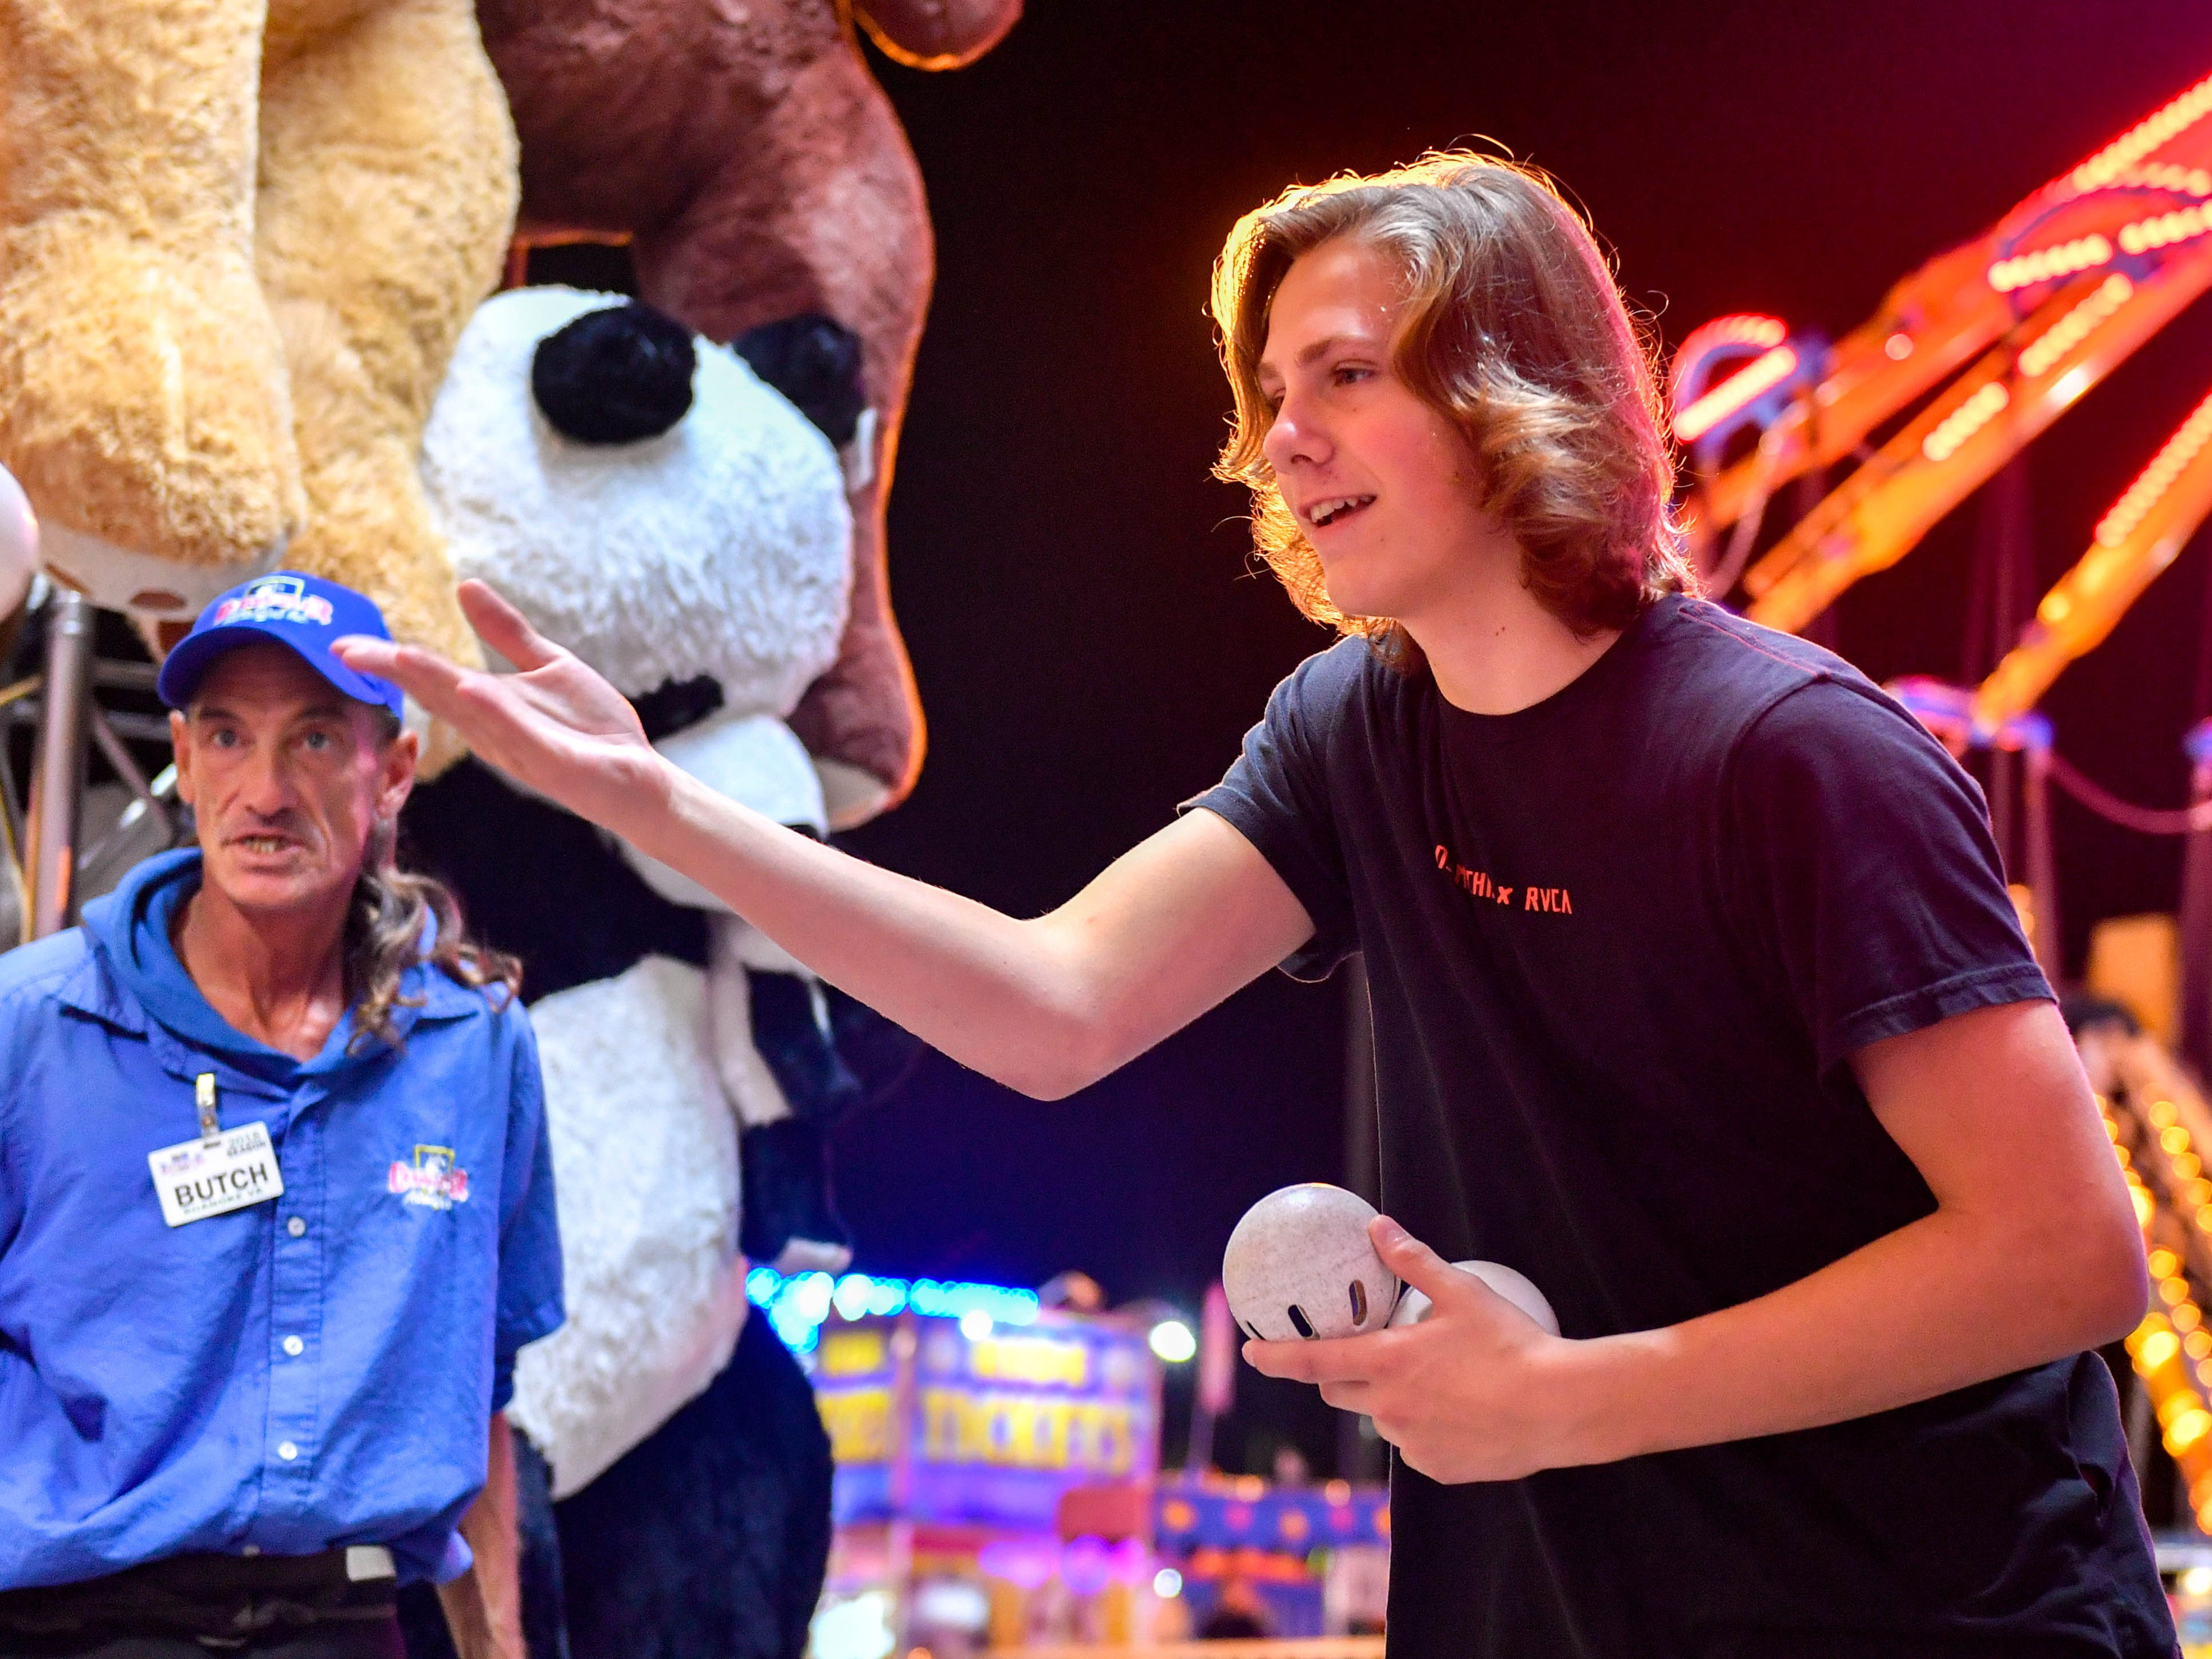 Neon lights are all around as evening fair-goers enjoy games and entertainment at the 2018 York Fair.